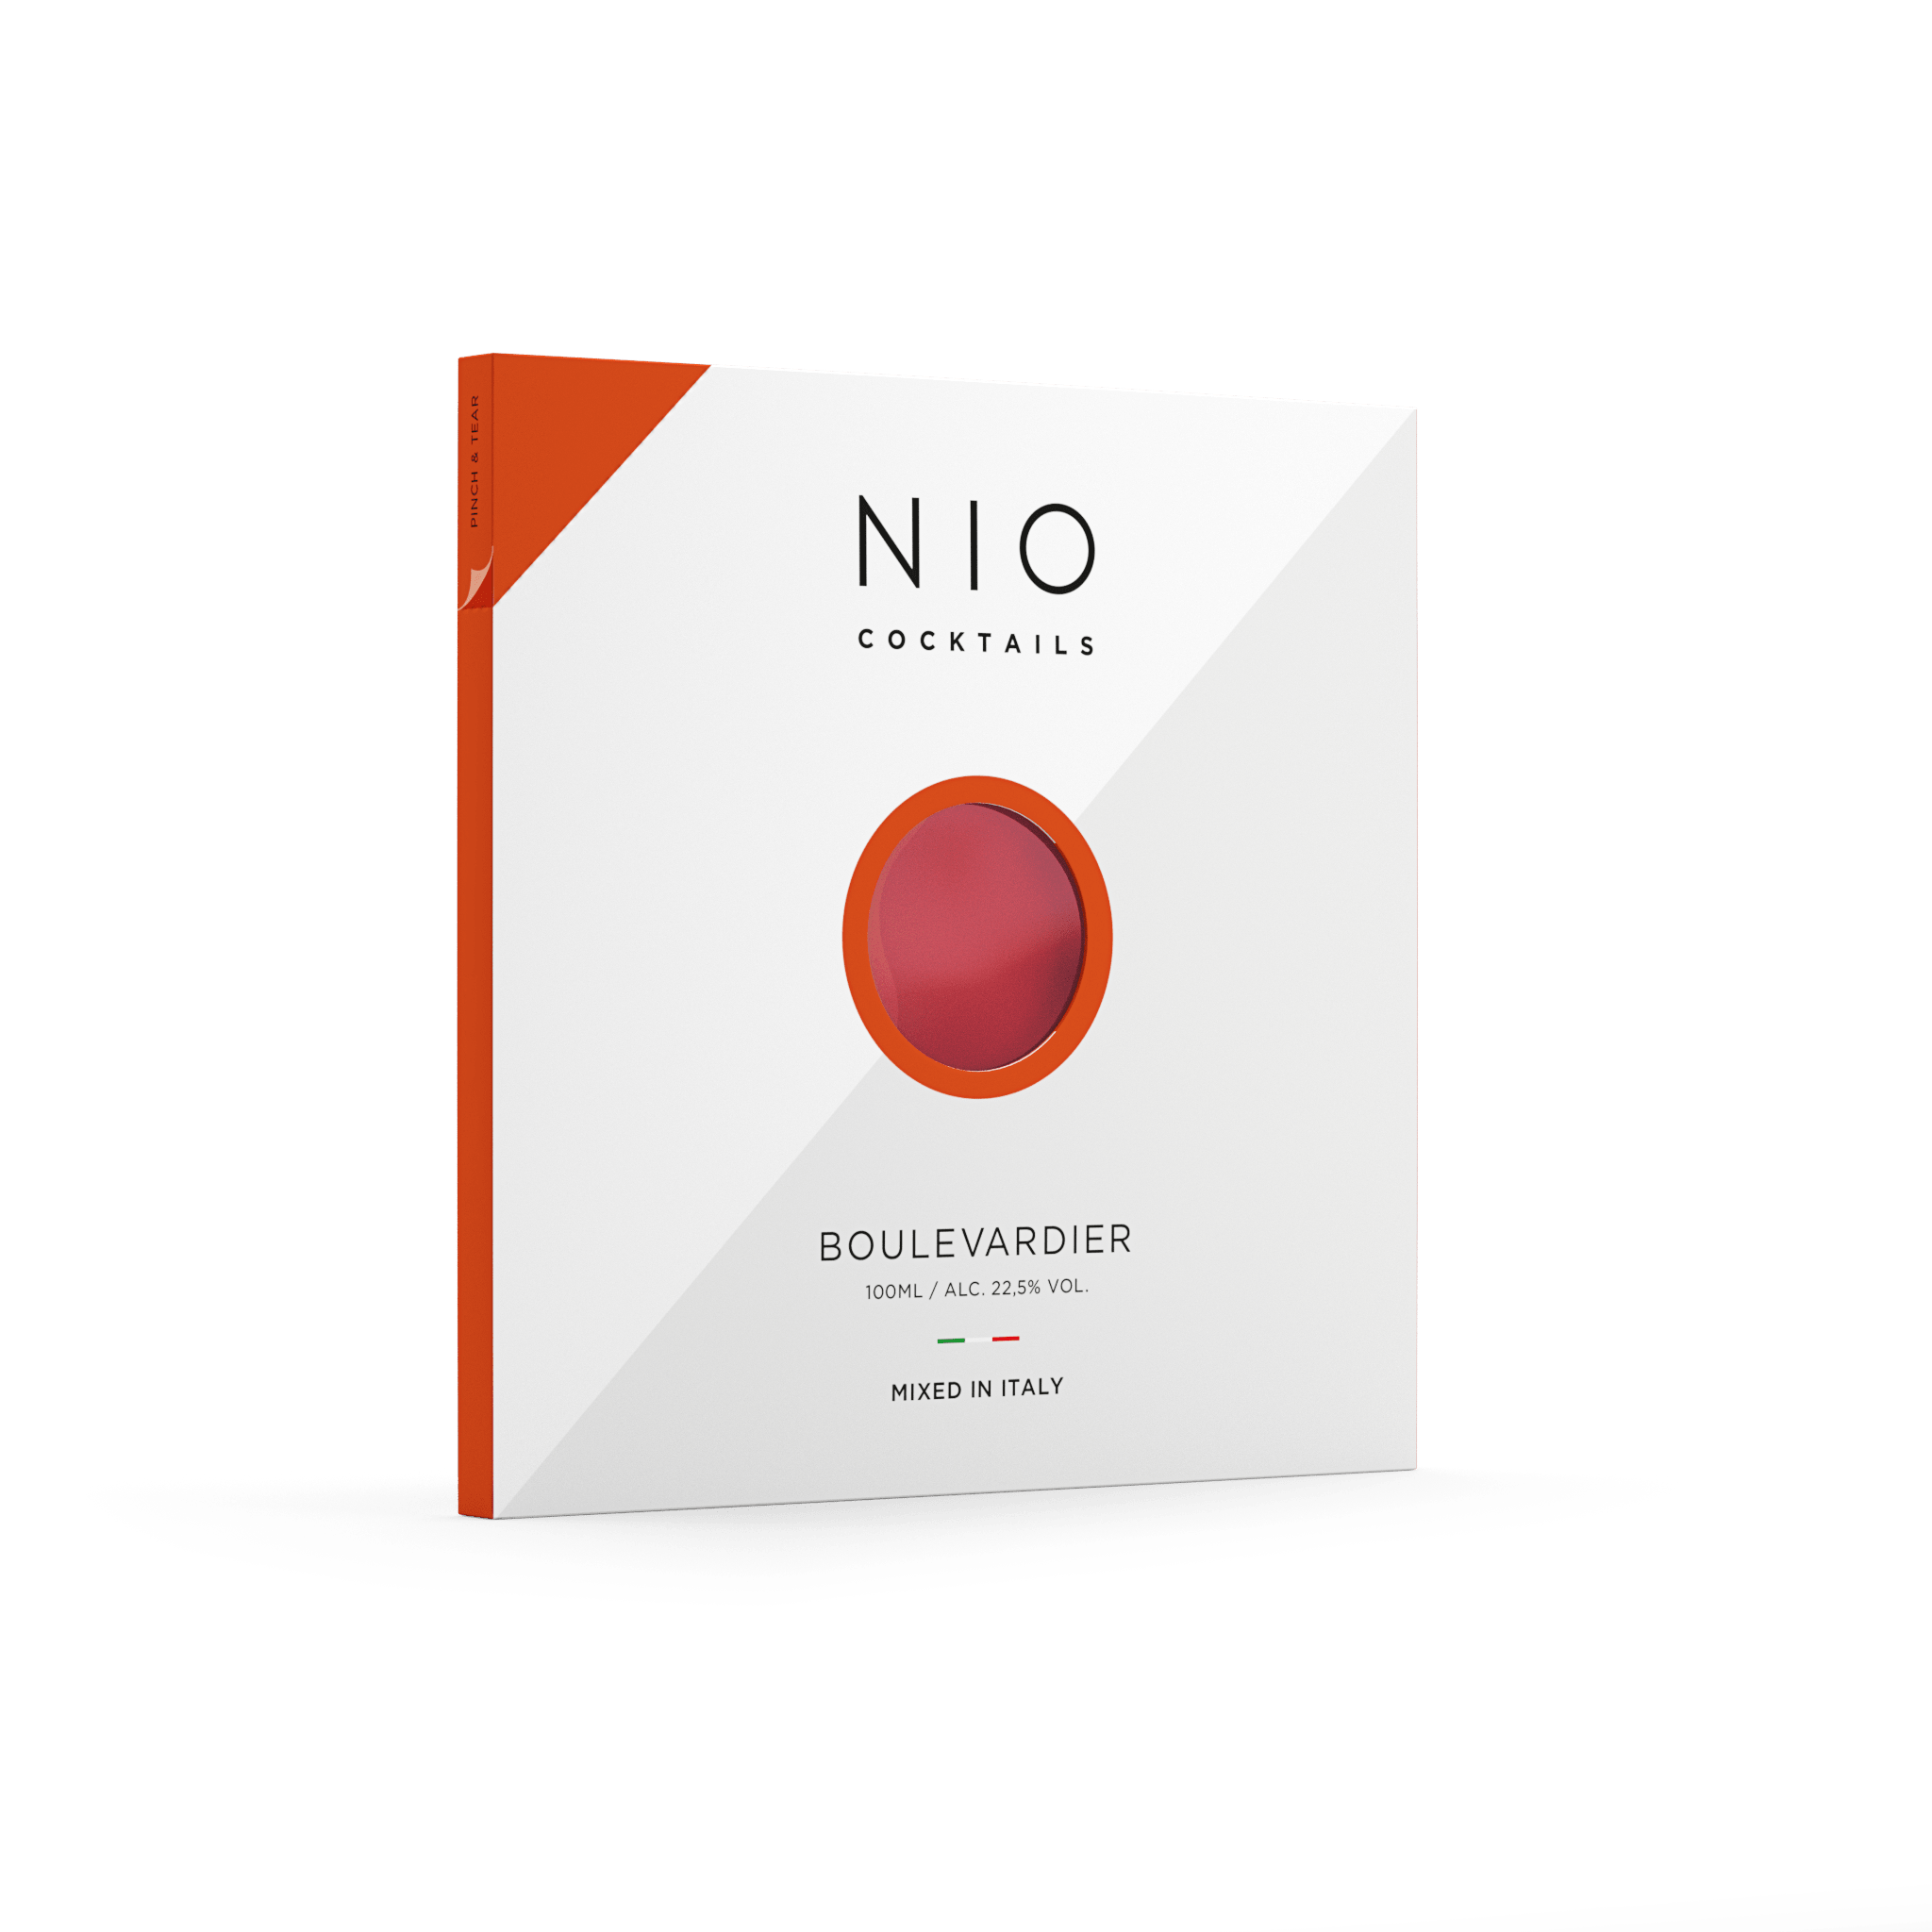 classic bourbon cocktail in 100ml ready to serve packaging from NIO Cocktails UK